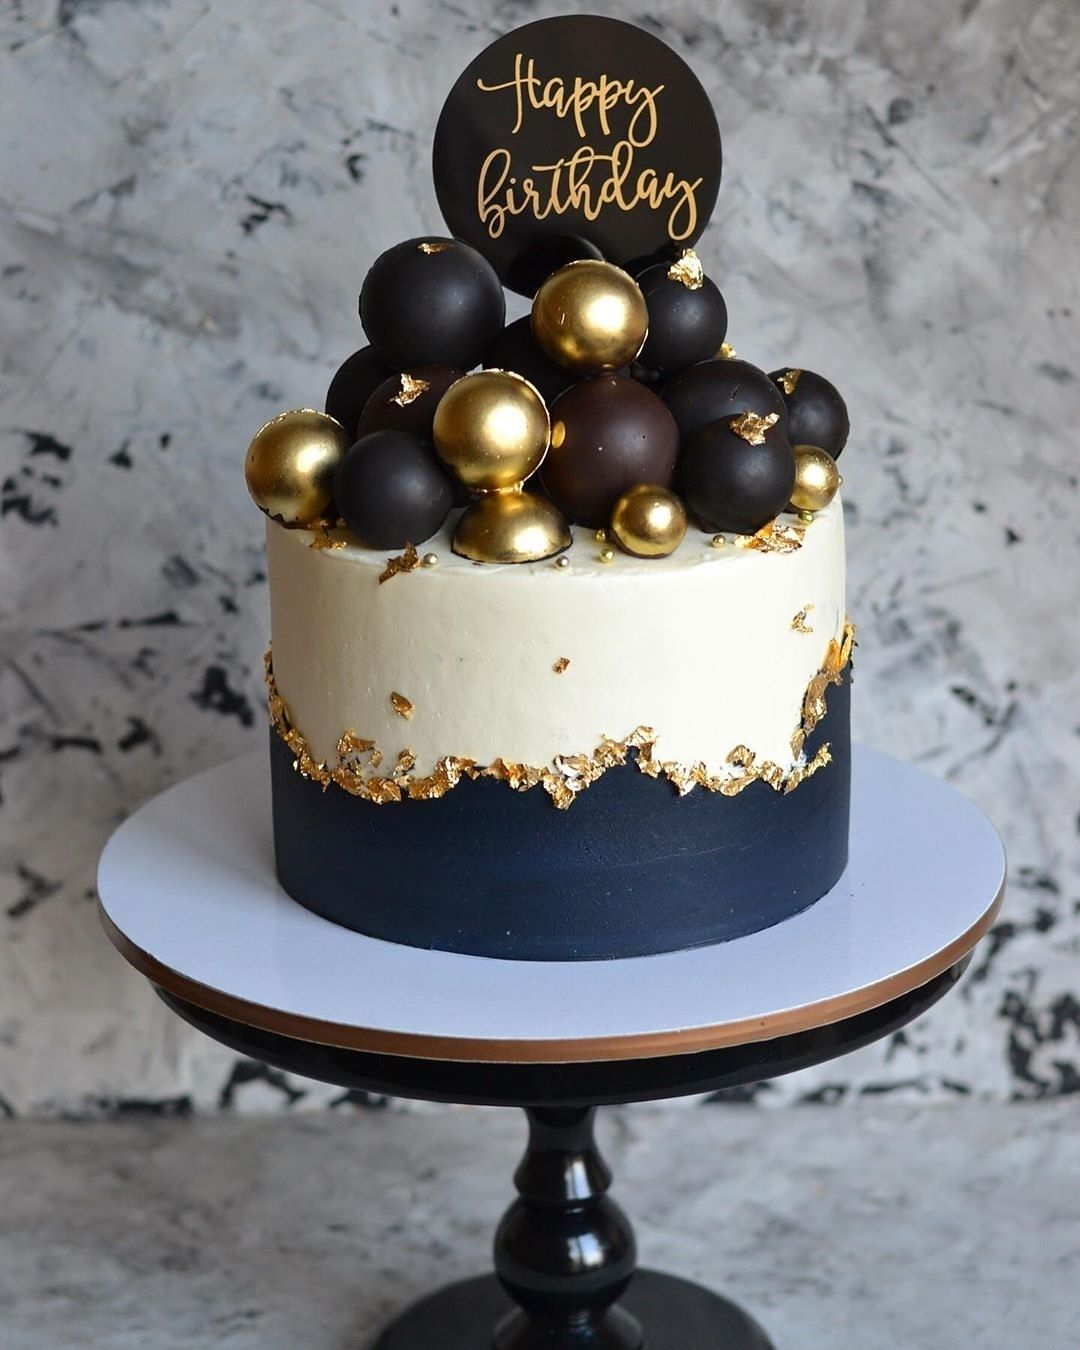 Pin by Jessica Isla31 on cakes in 2020 Birthday cake for